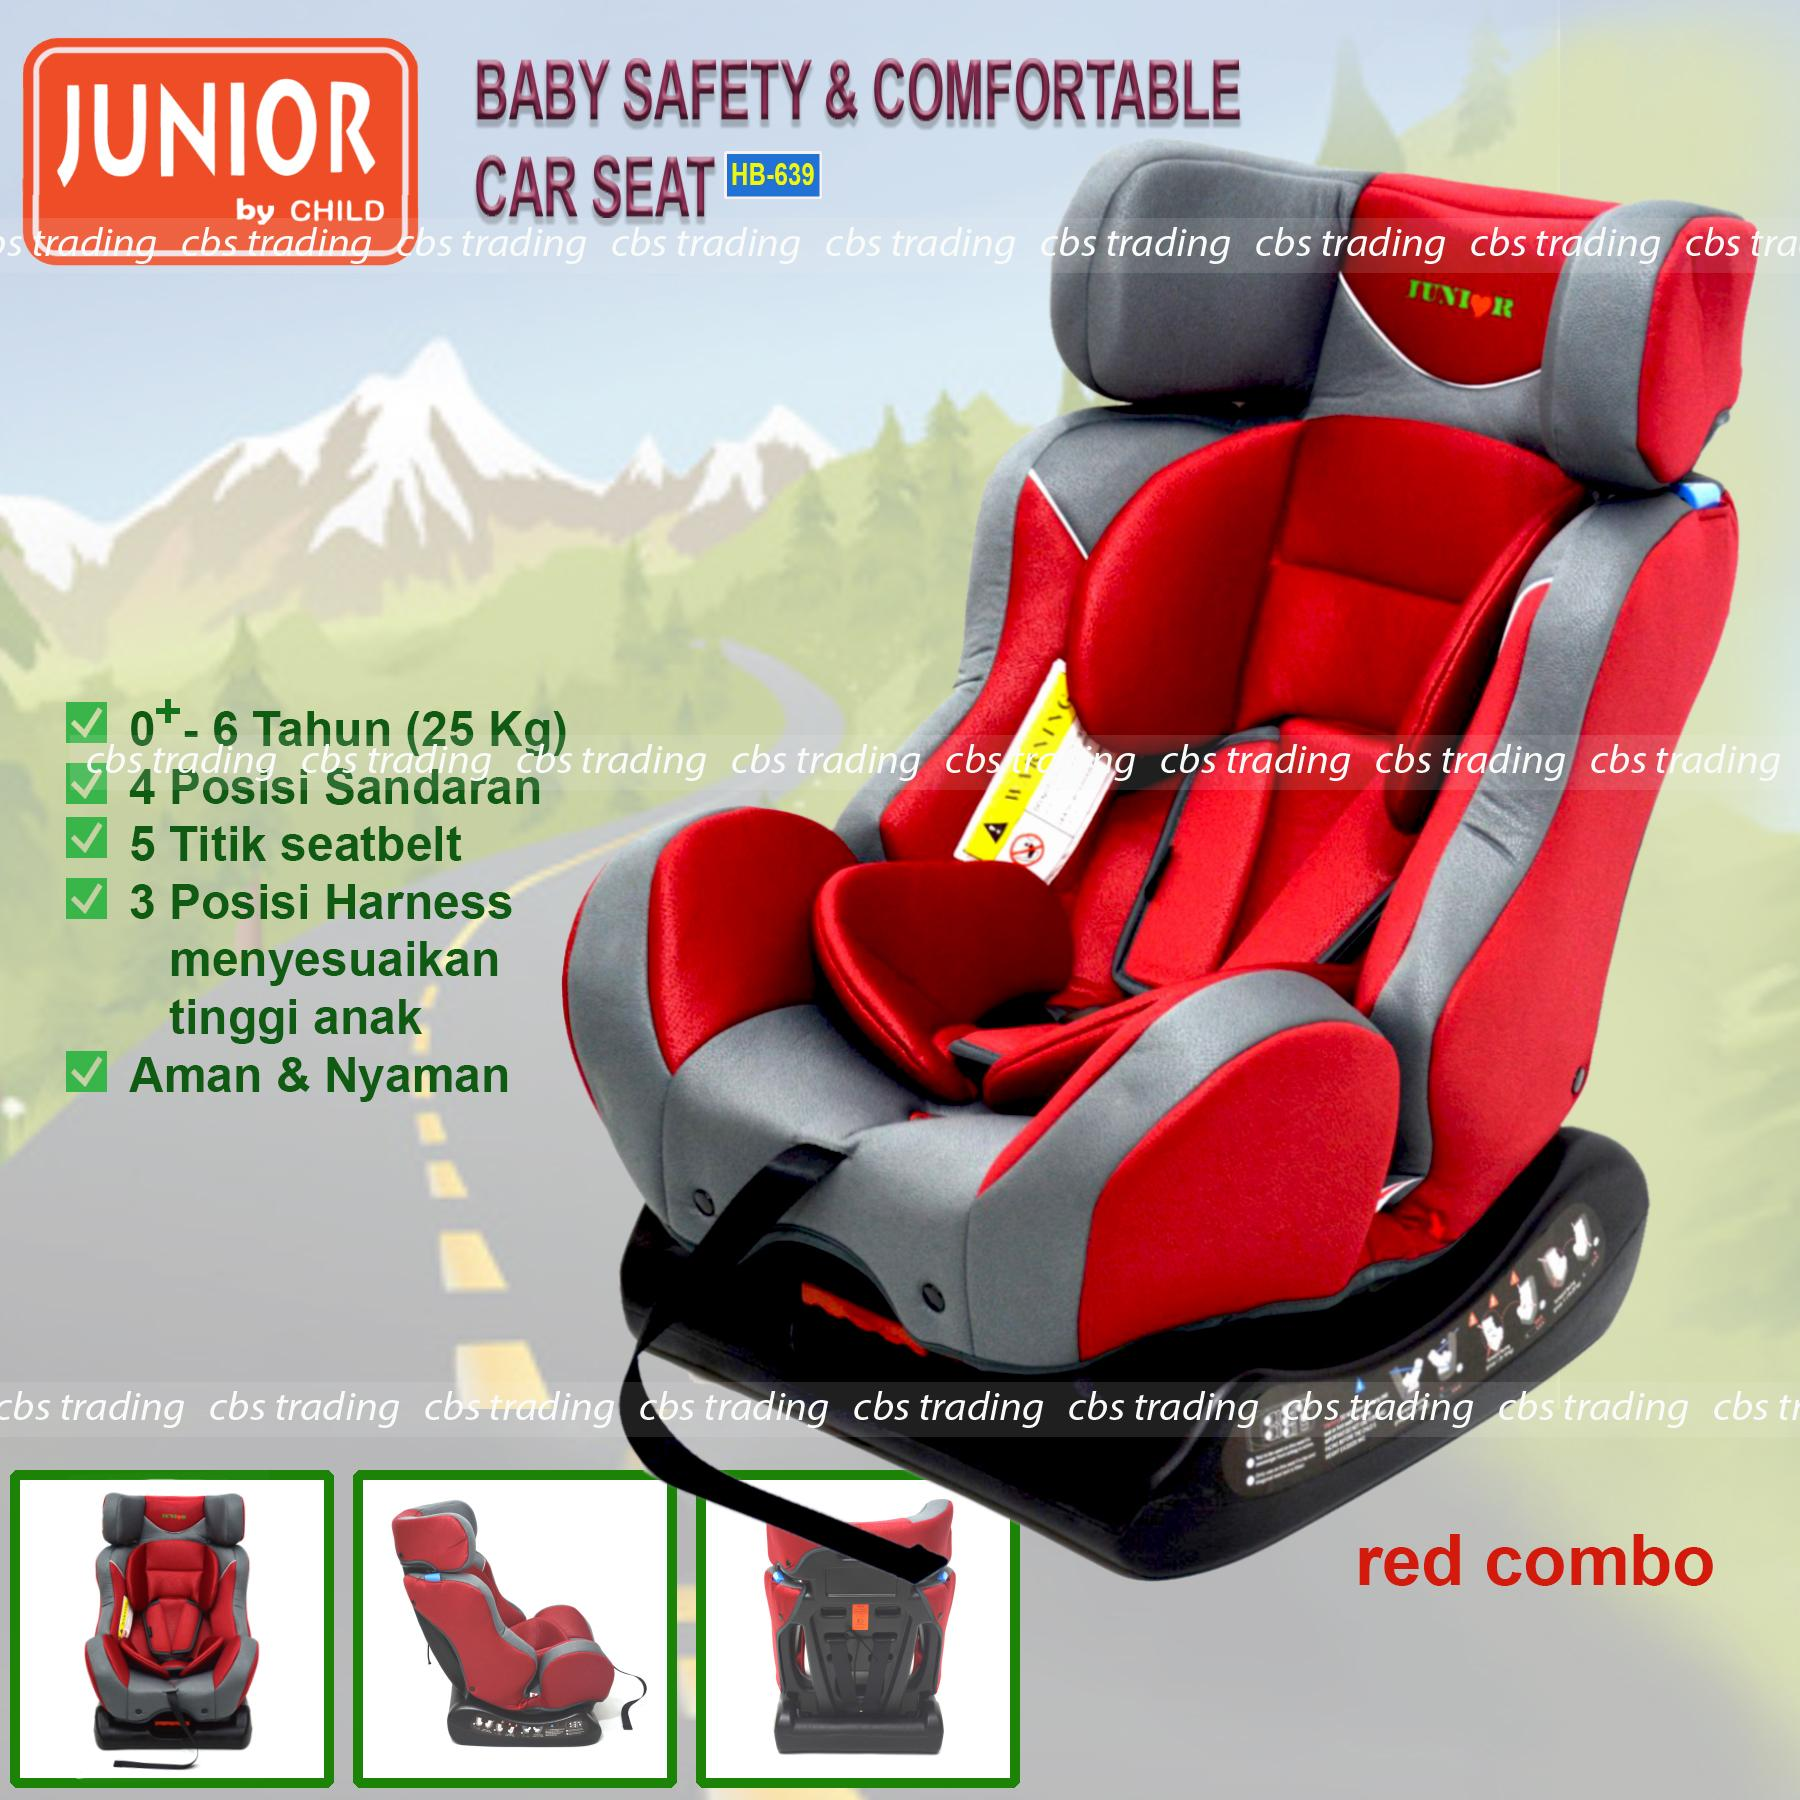 L'abeille Junior Baby Safety & Comfortable Car Seat HB-639 - Kursi Mobil